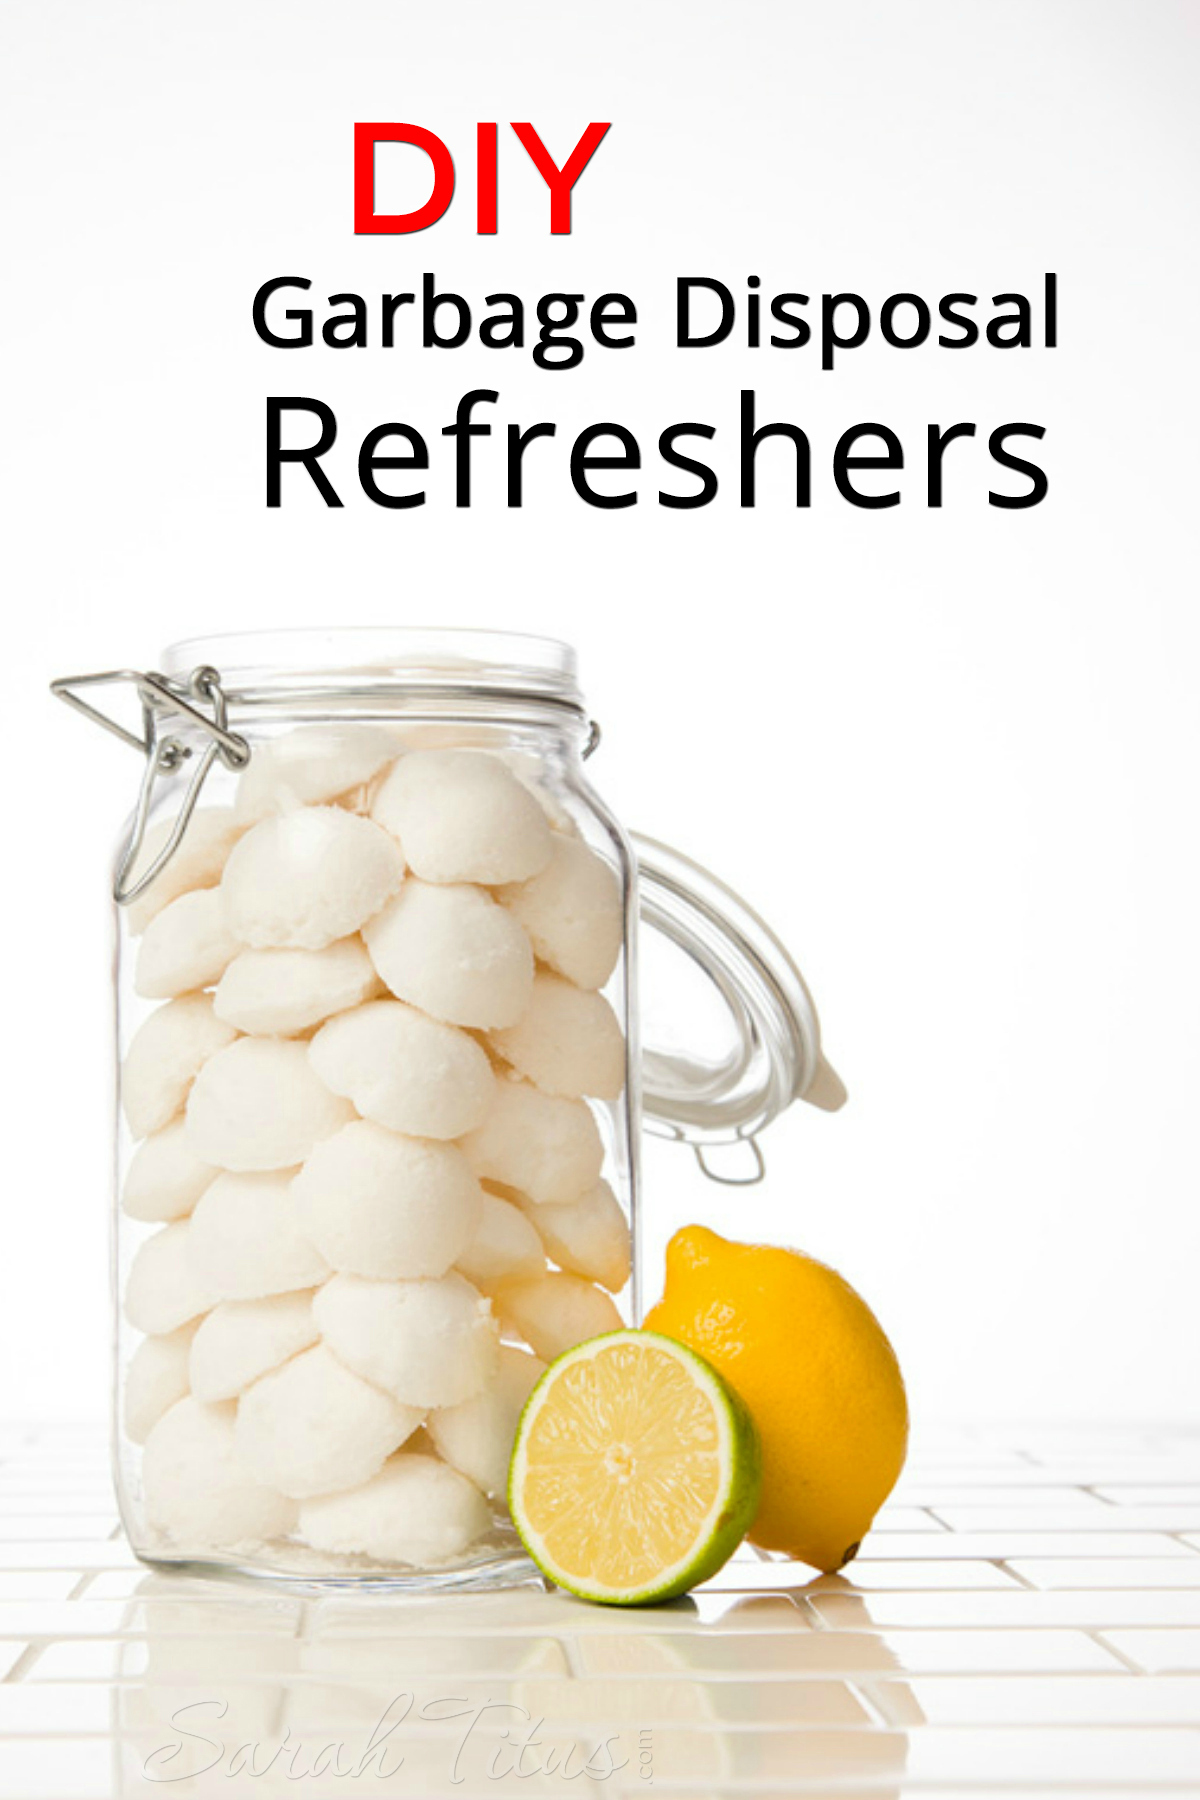 Chances are, with everything that goes in your garbage disposal, odors will begin to accumulate over time. These fantastic DIY Garbage Disposal Refreshers are just what you need!